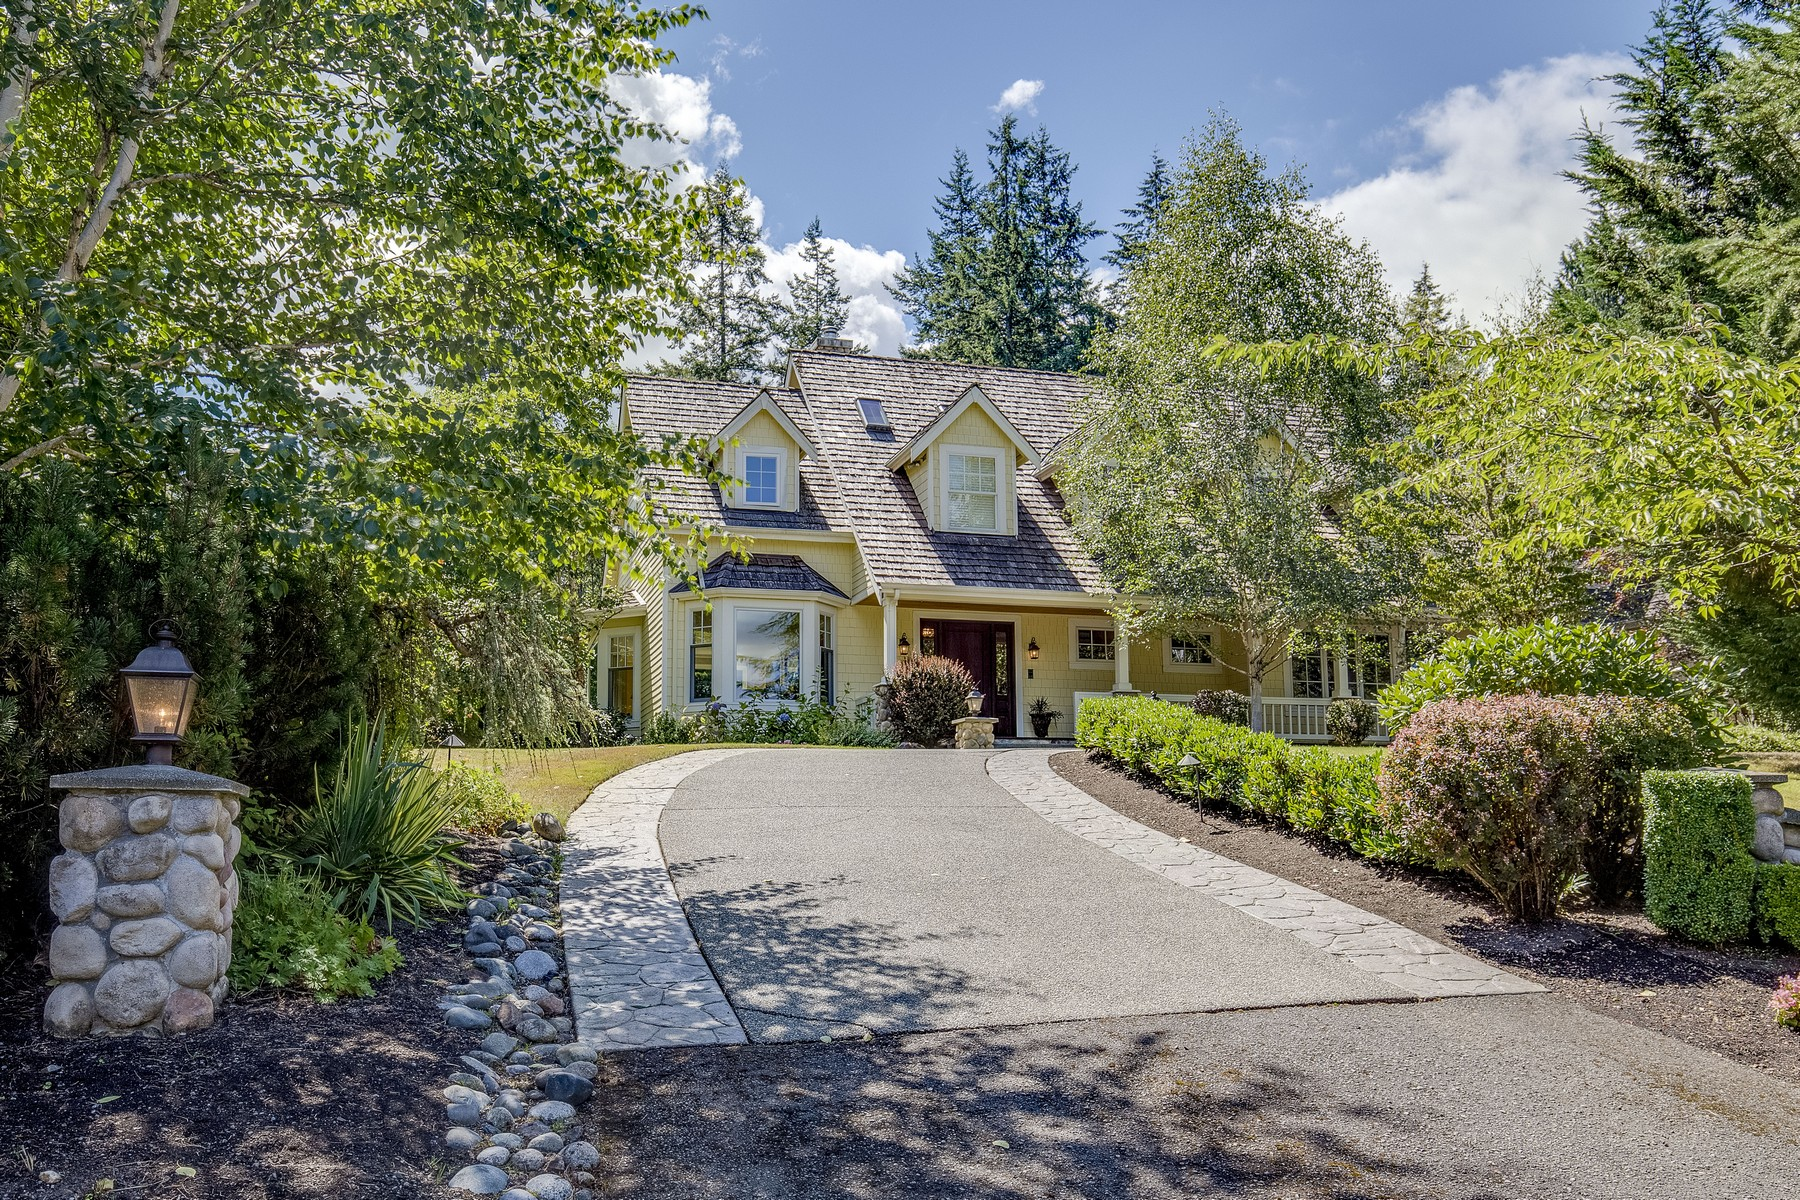 Single Family Home for Sale at A Wine Country Estate: Summerwood 22033 NE 137th St Woodinville, Washington 98077 United States